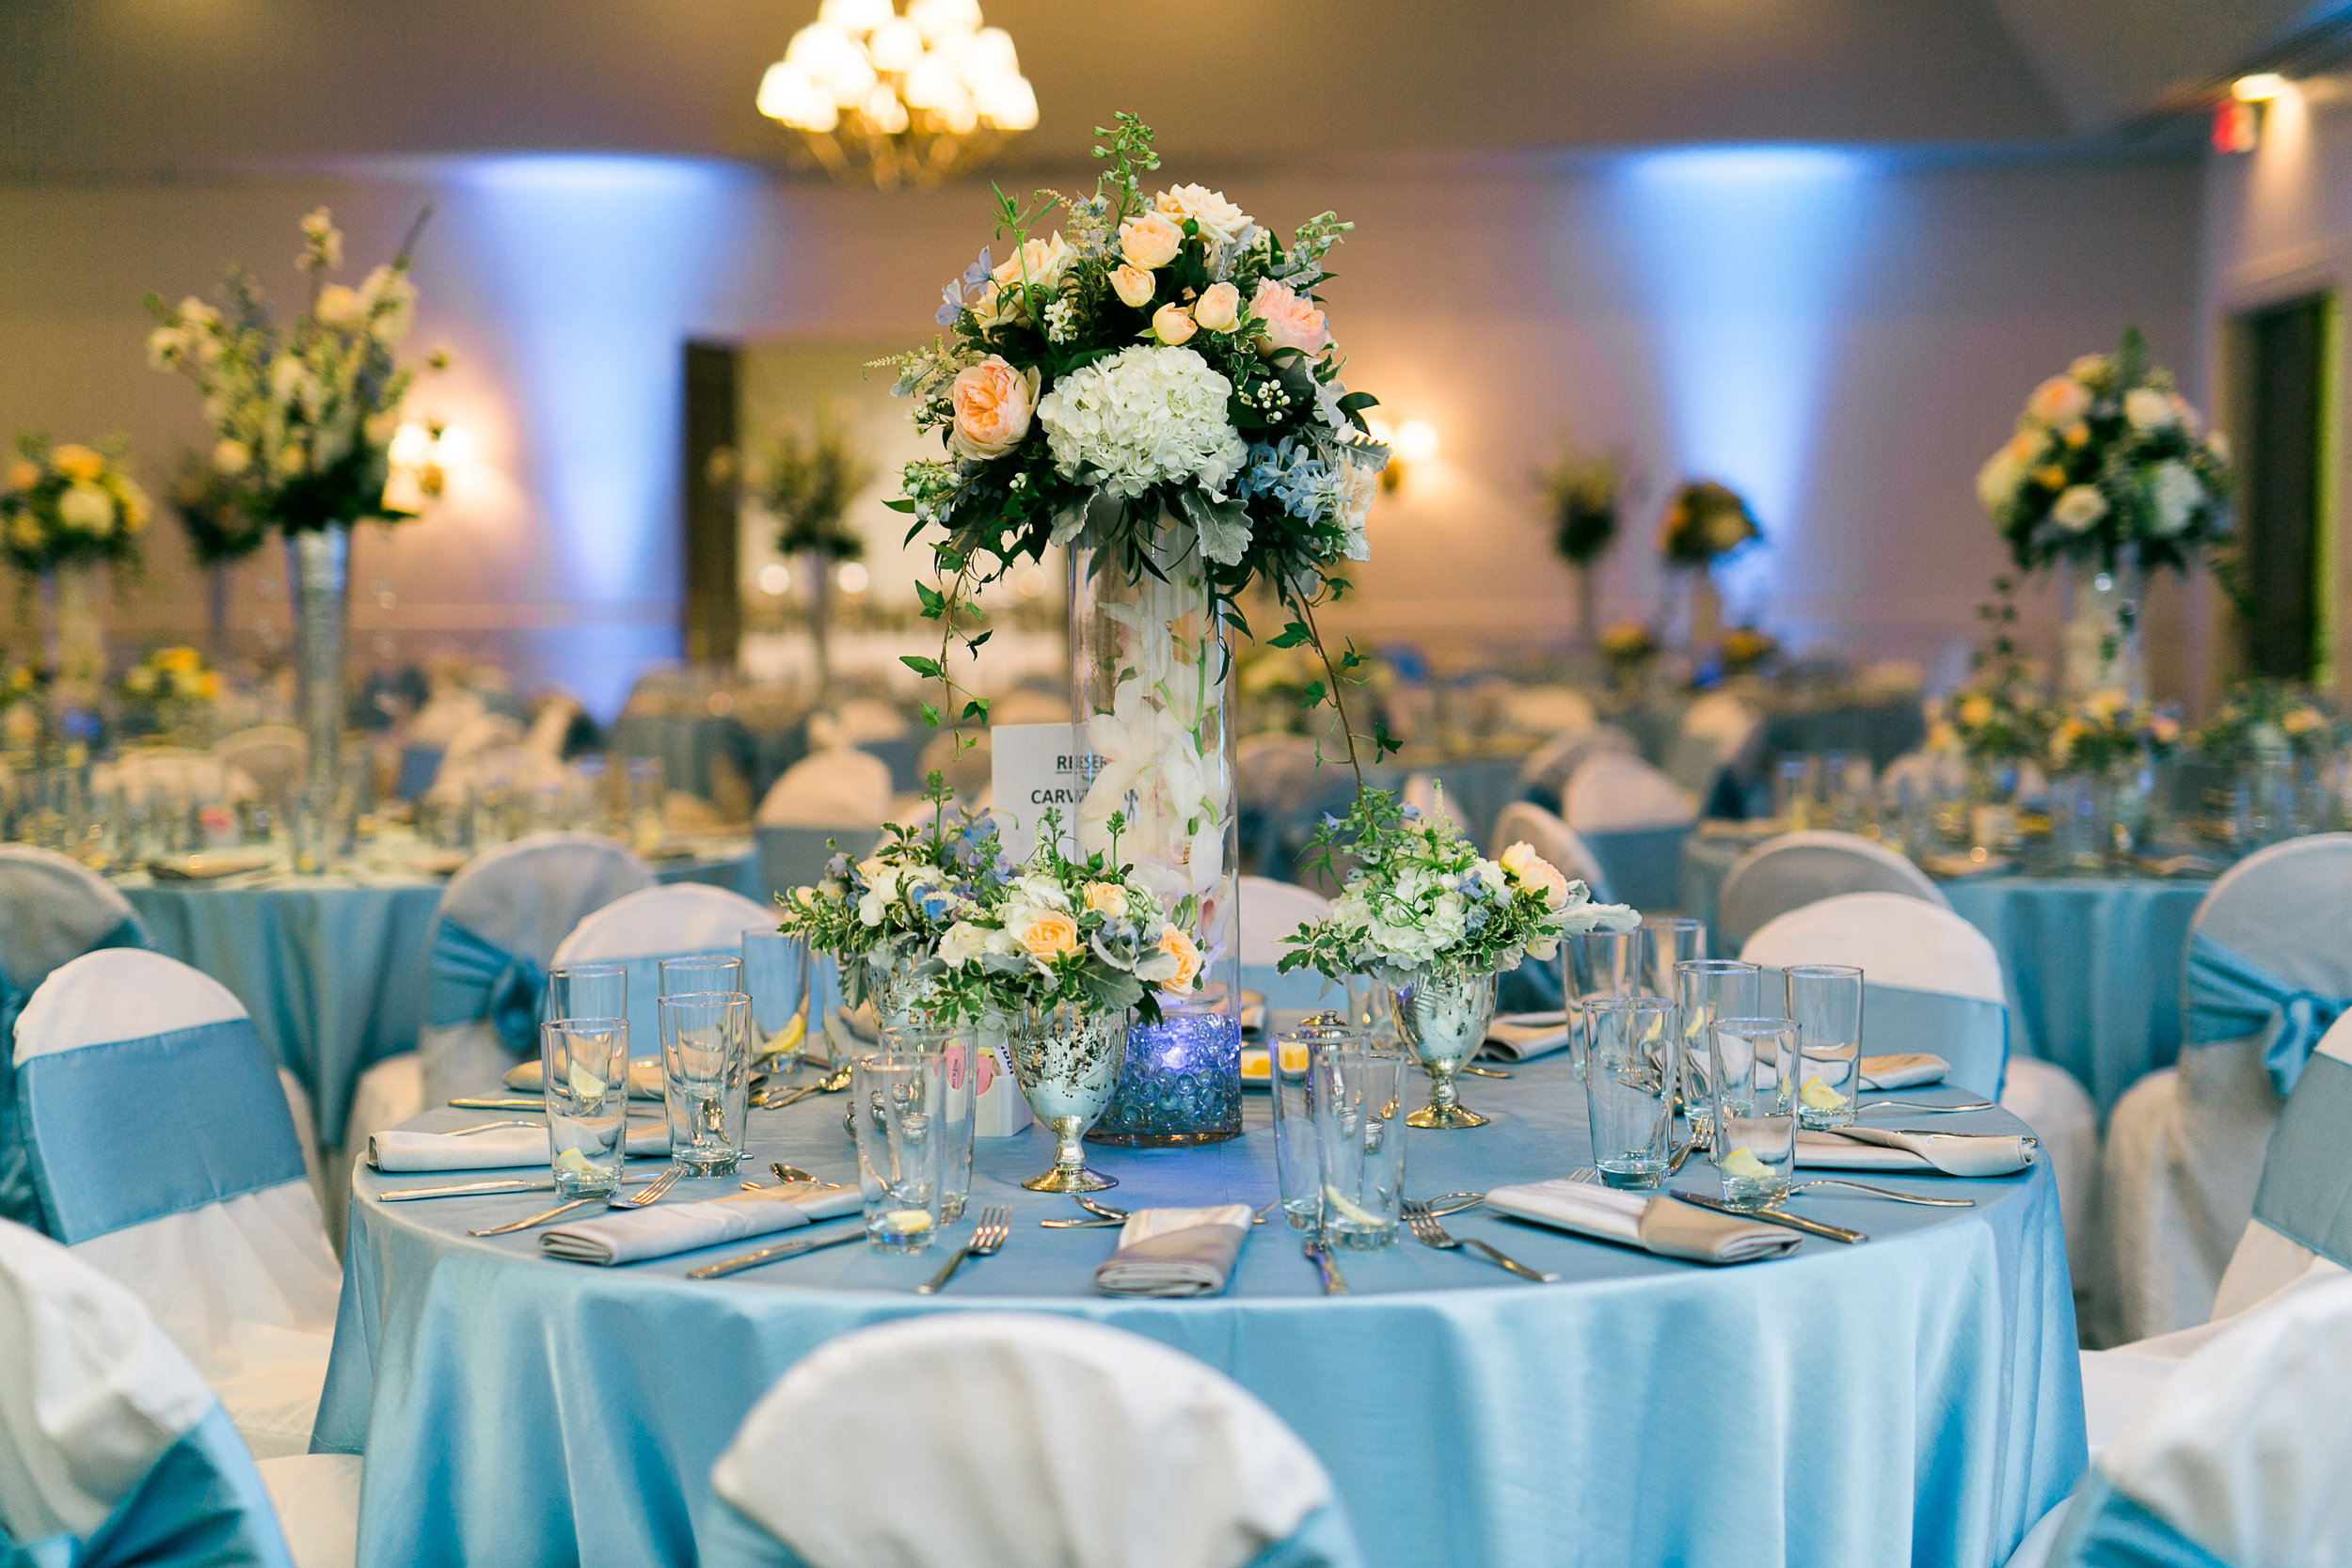 blue-silver-wedding-st-simons-island-heather-kyle-0898.jpg